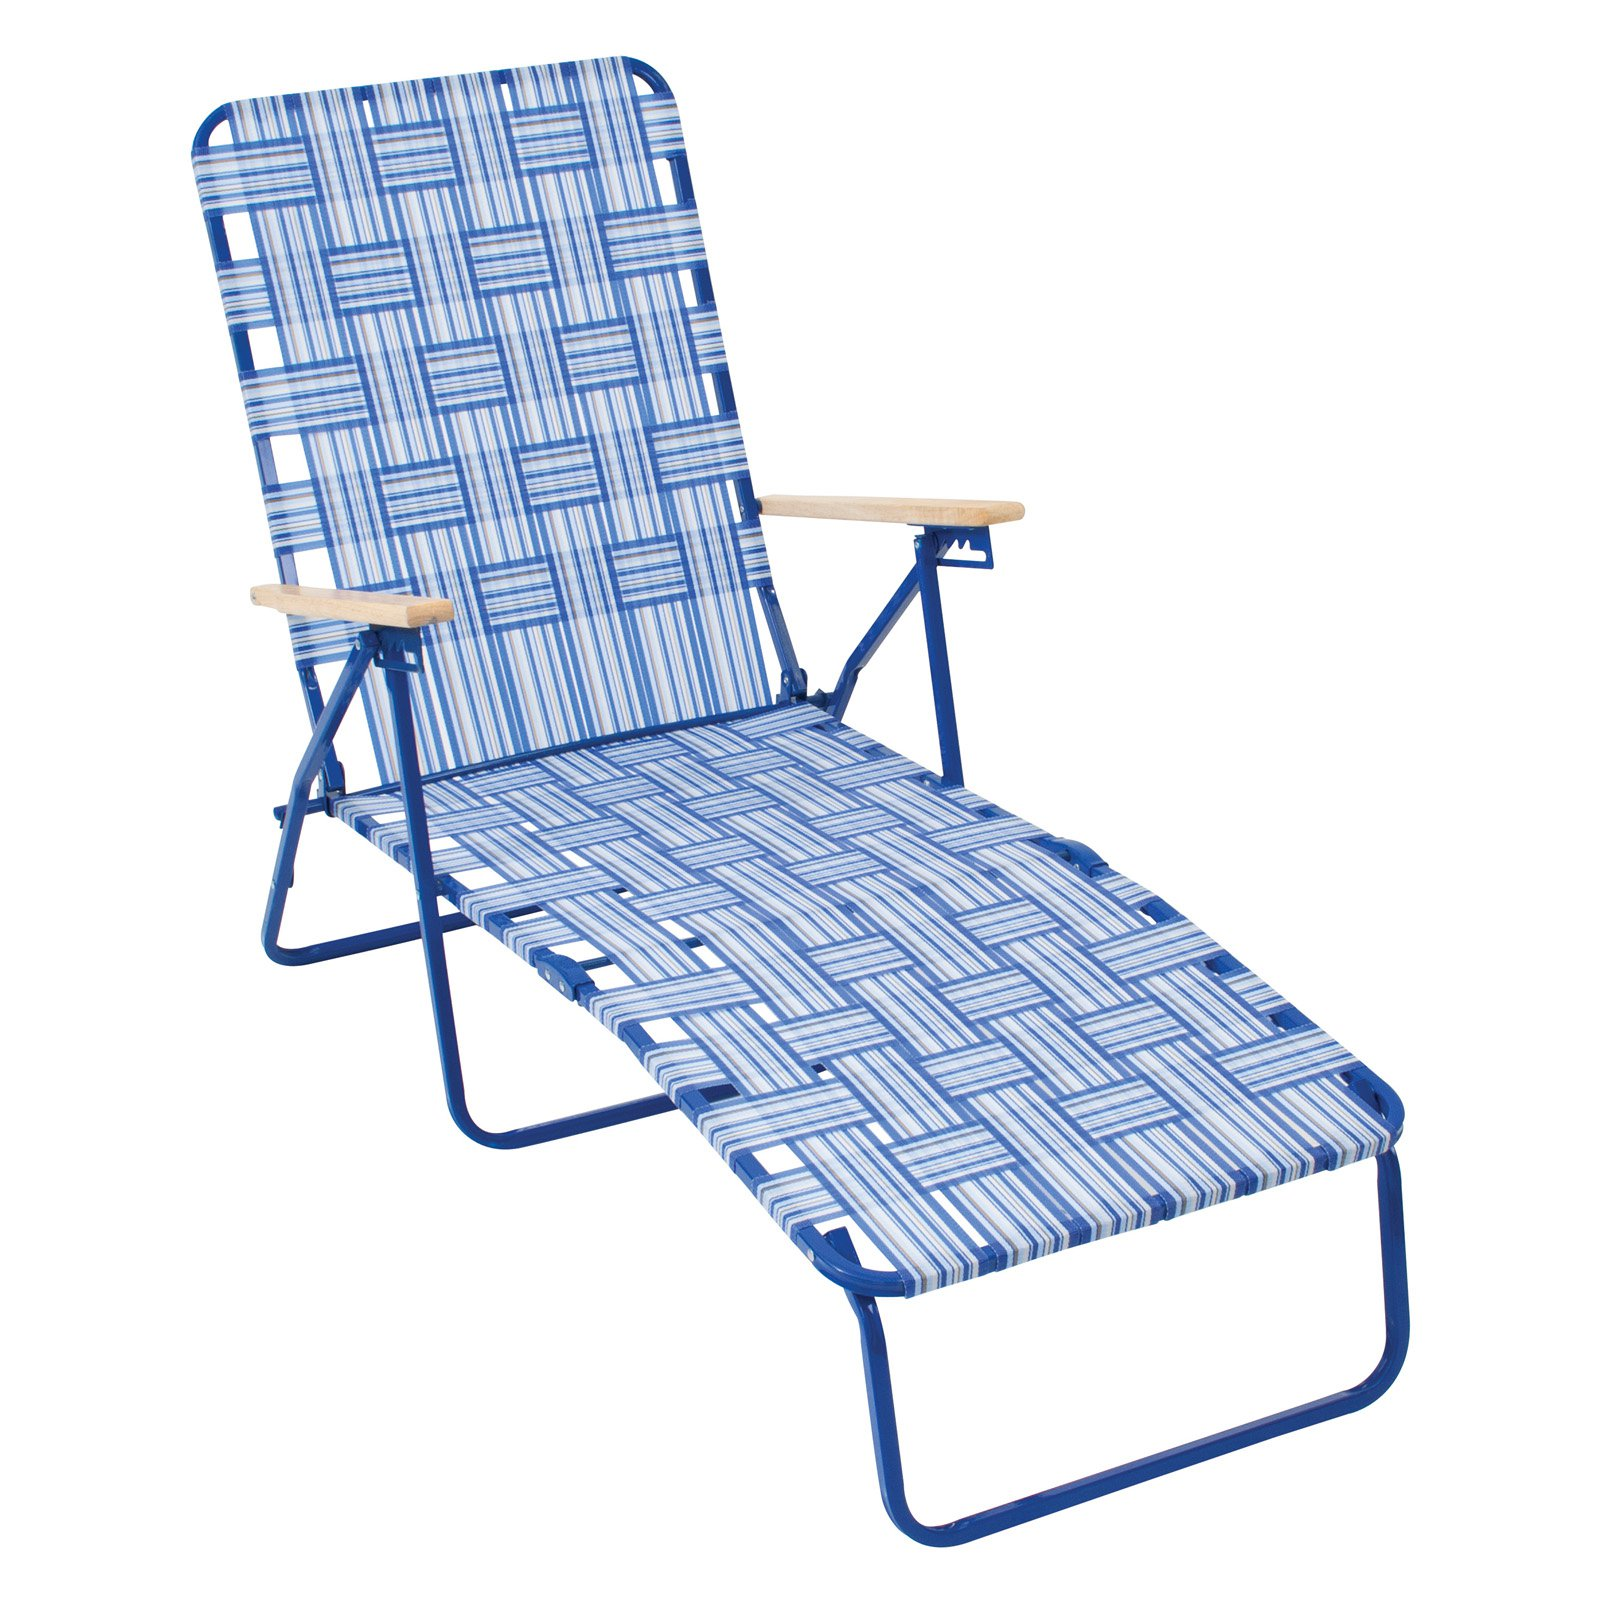 Rio Brands Rio Deluxe Folding Web Chaise Lounge Chair  sc 1 st  Walmart : chaise lounge folding - Sectionals, Sofas & Couches